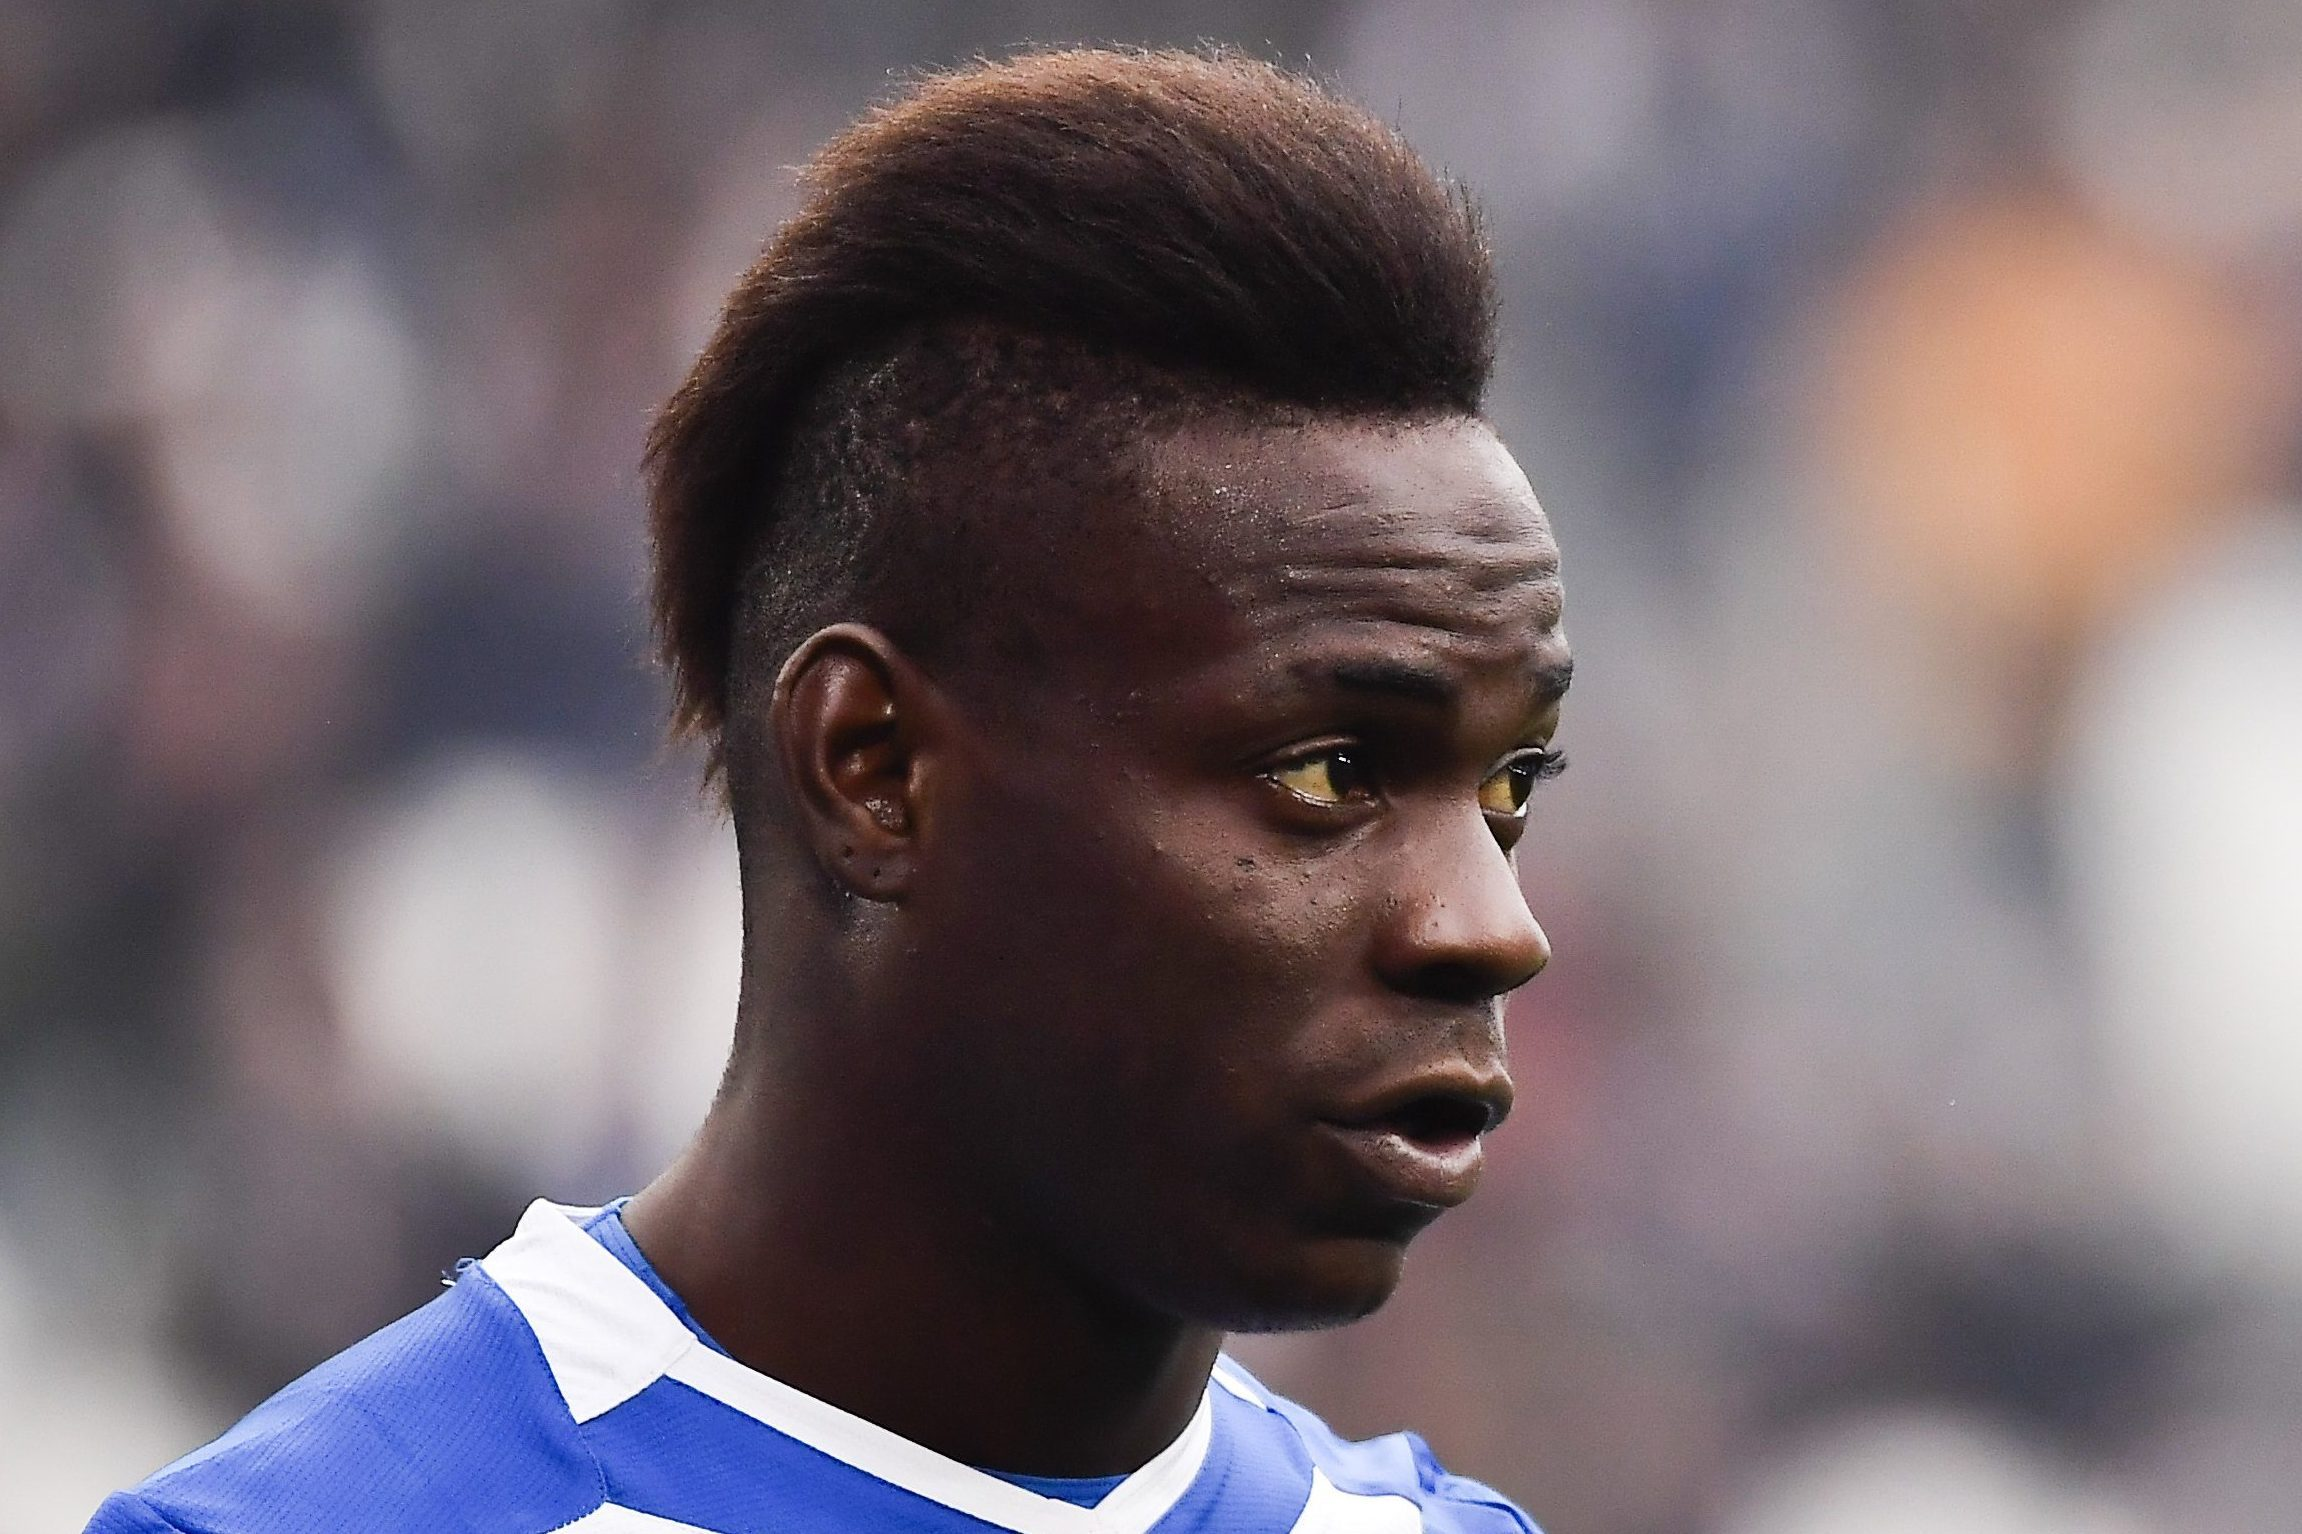 Mario Balotelli - Short Biography and Football History - All in All News